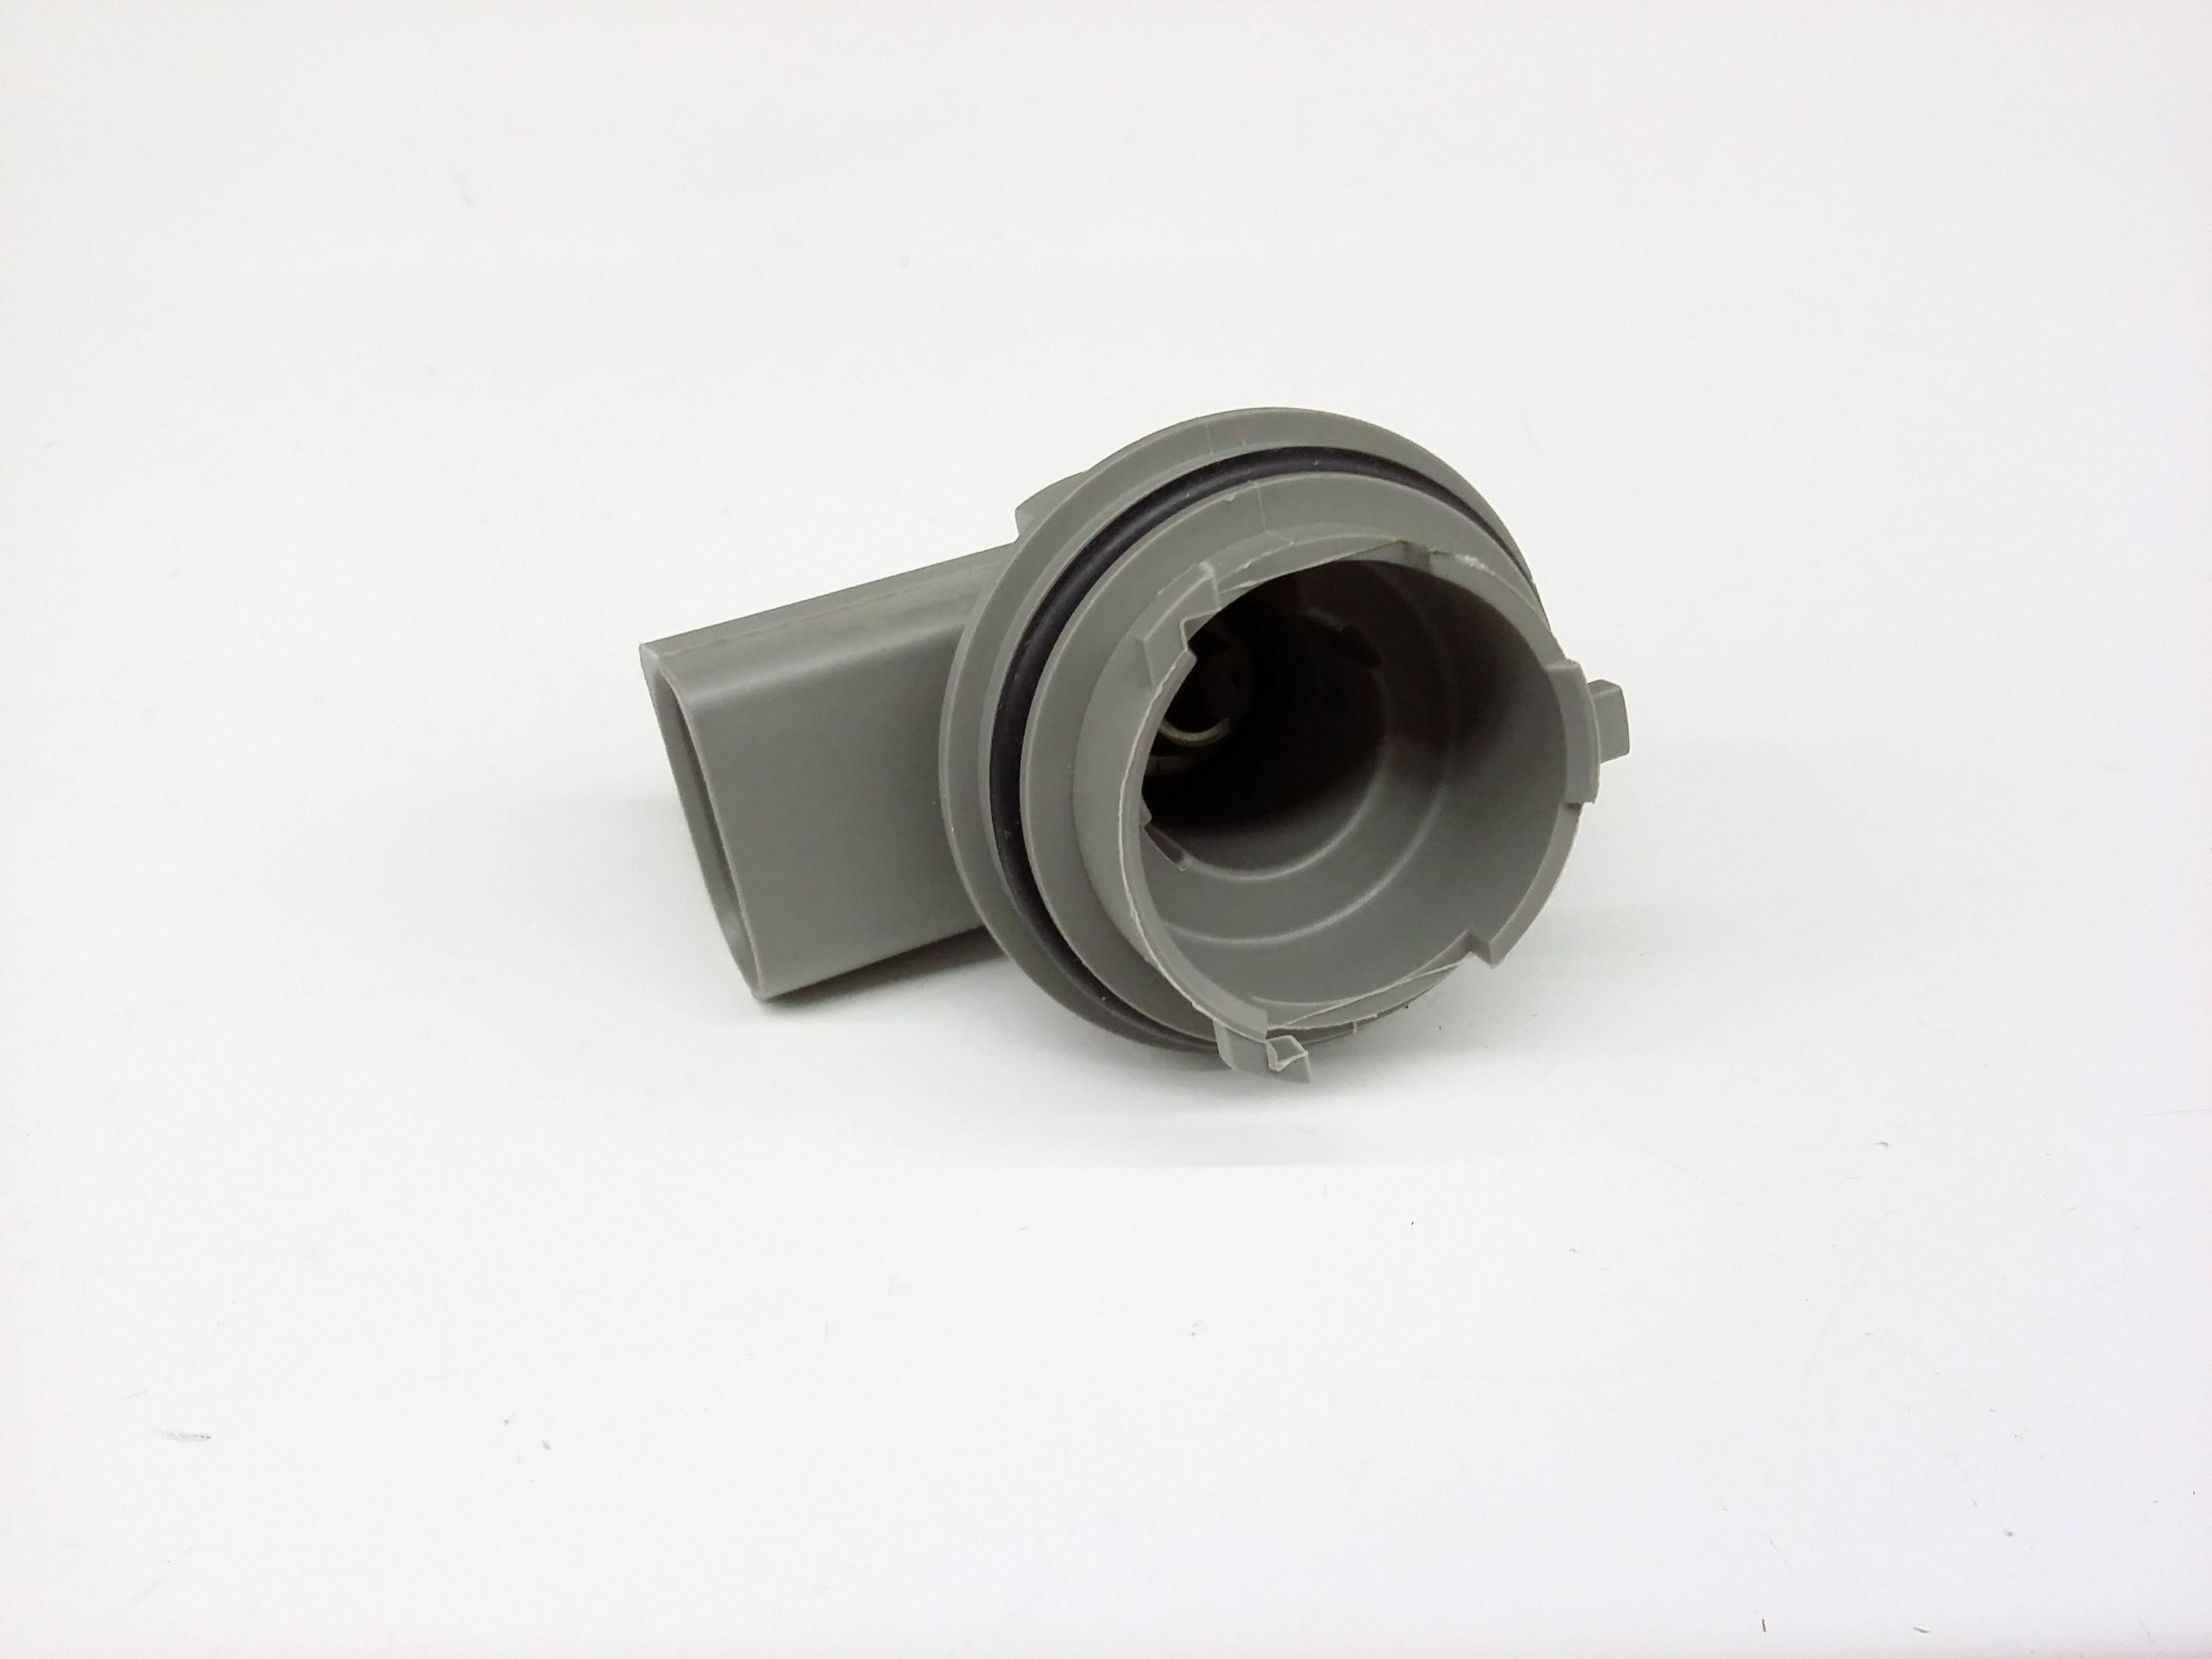 1h0953123e Audi Bulb Socket Socket For Bulb Audi Jim